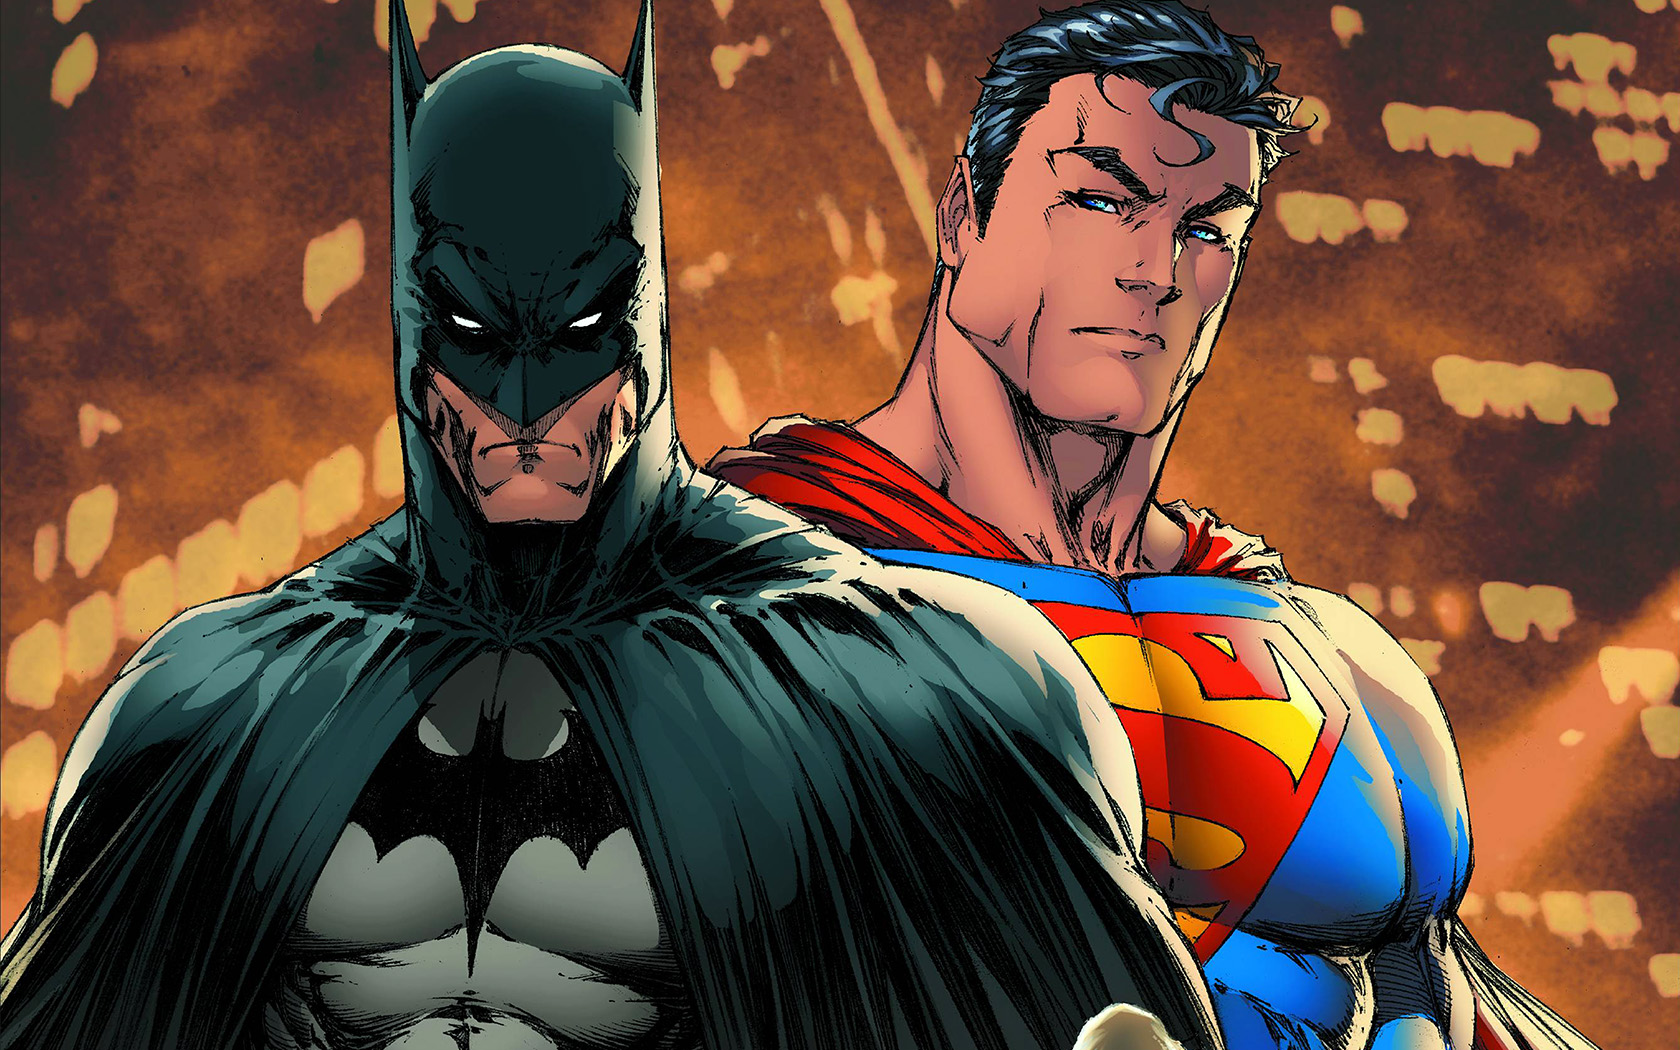 batman vs superman comparison paper essay Superman and batman comparison and contrast essay not often in literary history do two characters contrast and match each other so well superman and batman are the figure heads of dc comics and were the only characters keeping the comic giant above the rising waters of collapse.